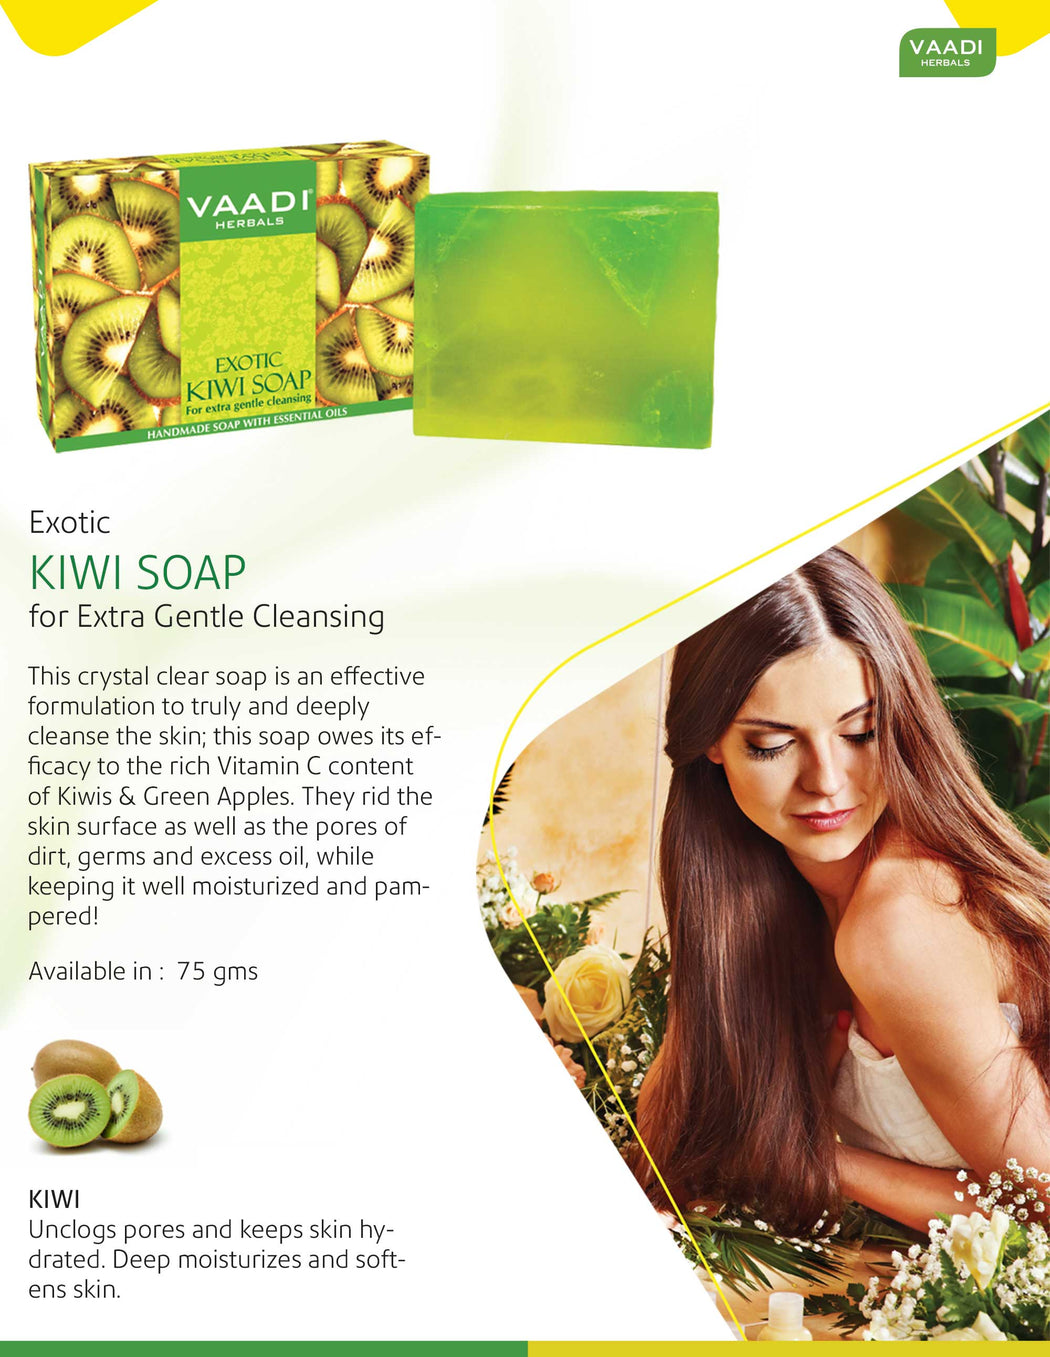 Exotic Organic Kiwi Soap with Green Apple Extract - Gently Clears Skin (6 x 75 gms / 2.7 oz)